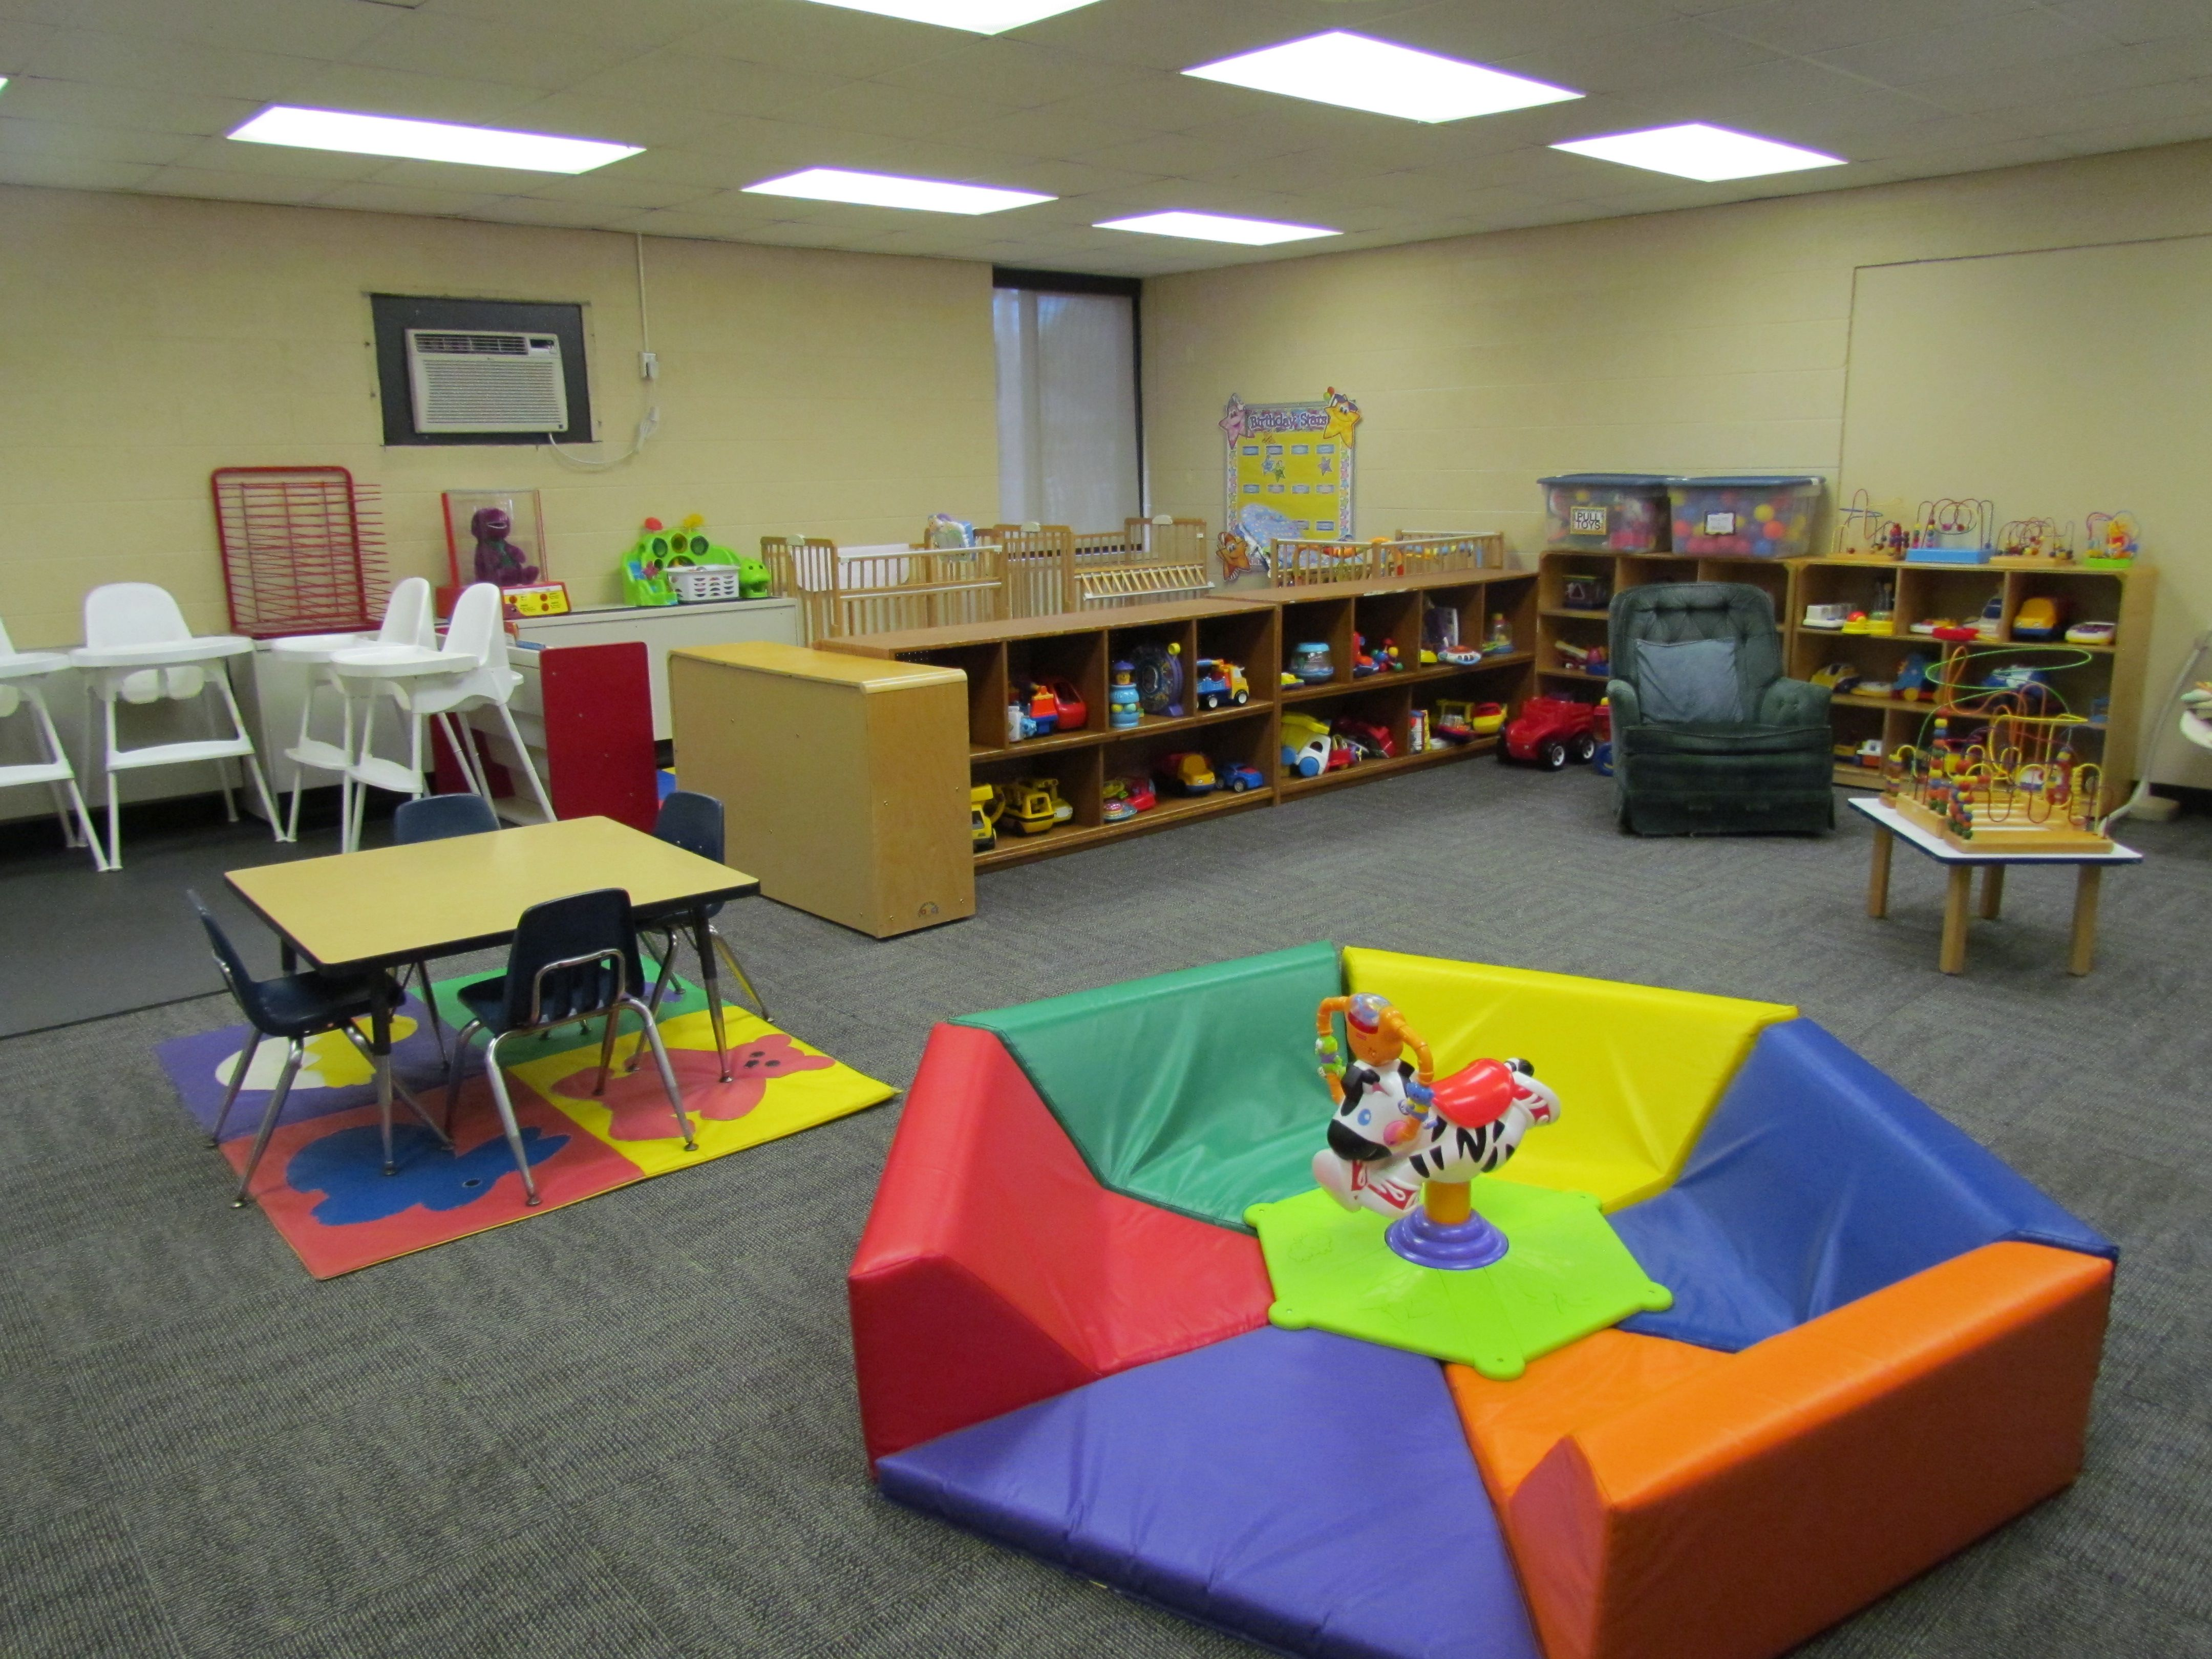 Baby cribs for daycare centers - Find This Pin And More On Daycare Things Child Care Centers